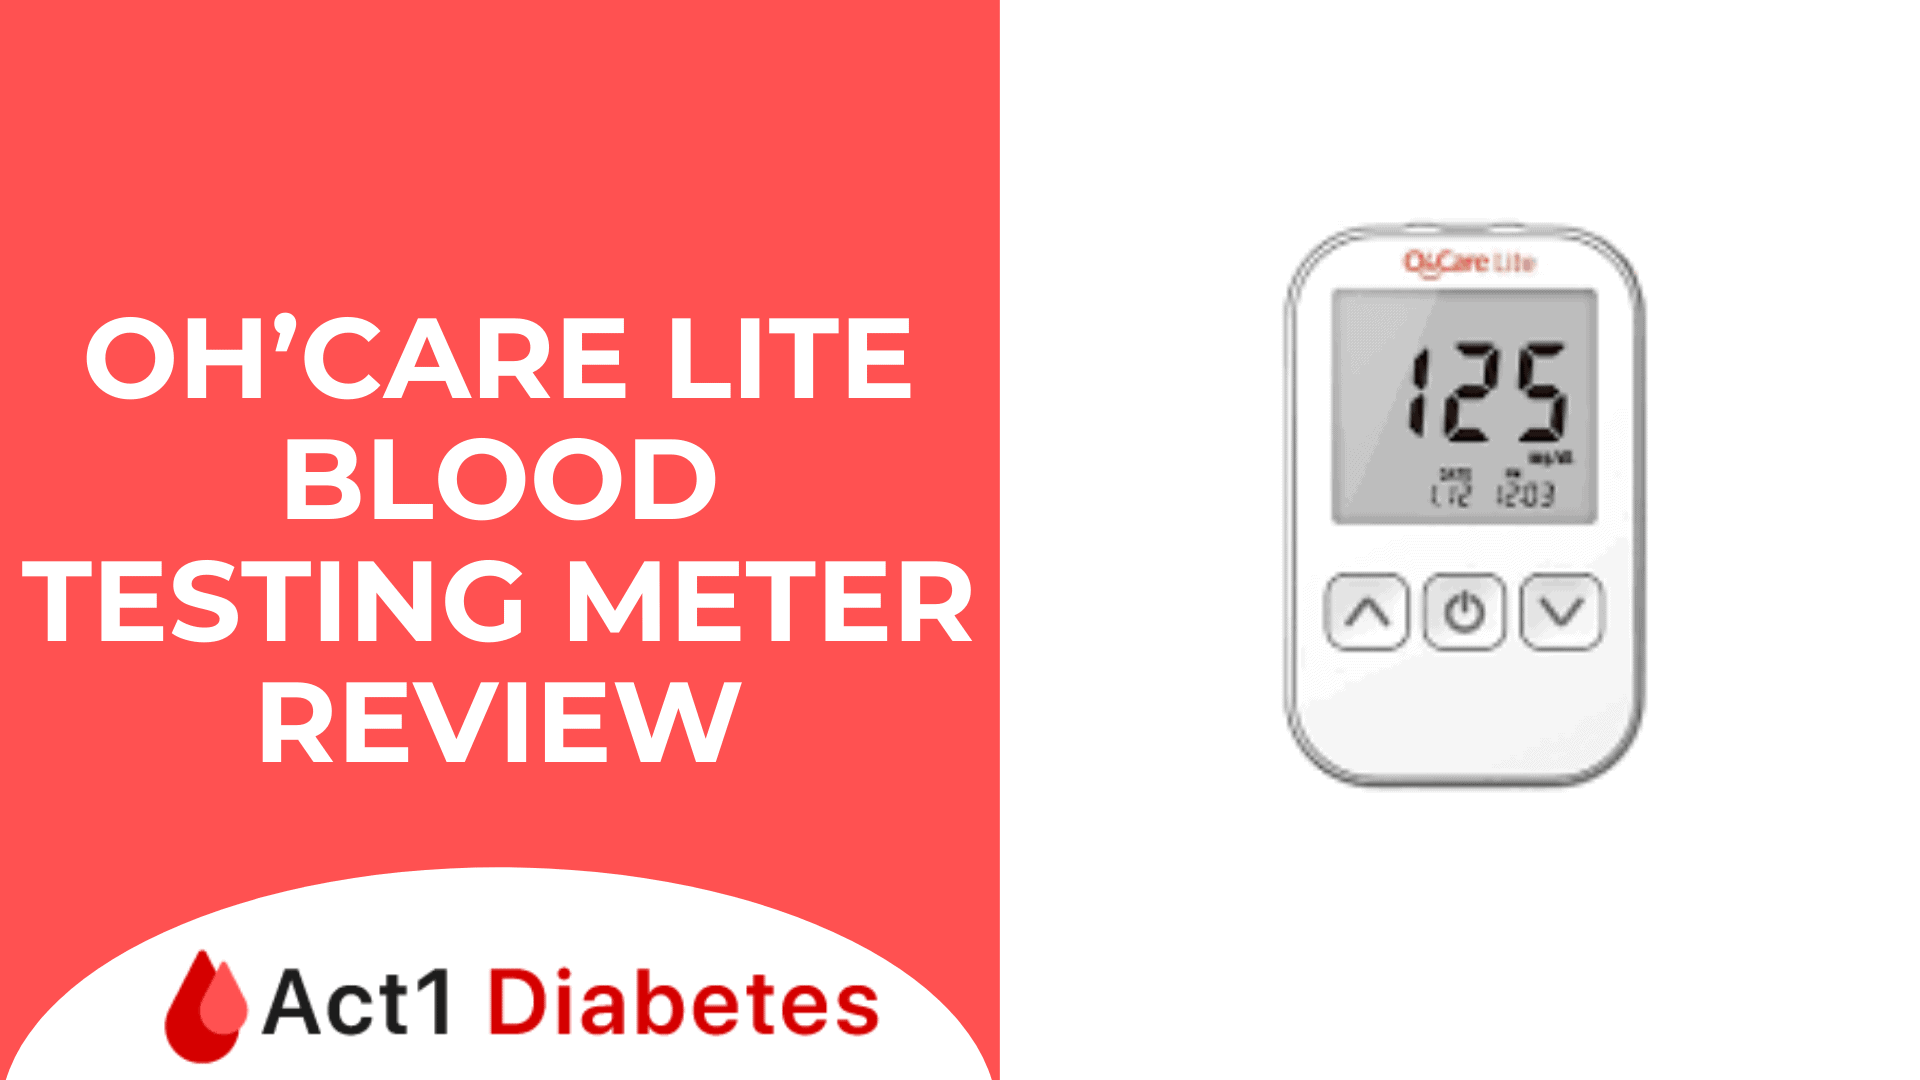 Oh'Care Lite BLood Testing Meter Review